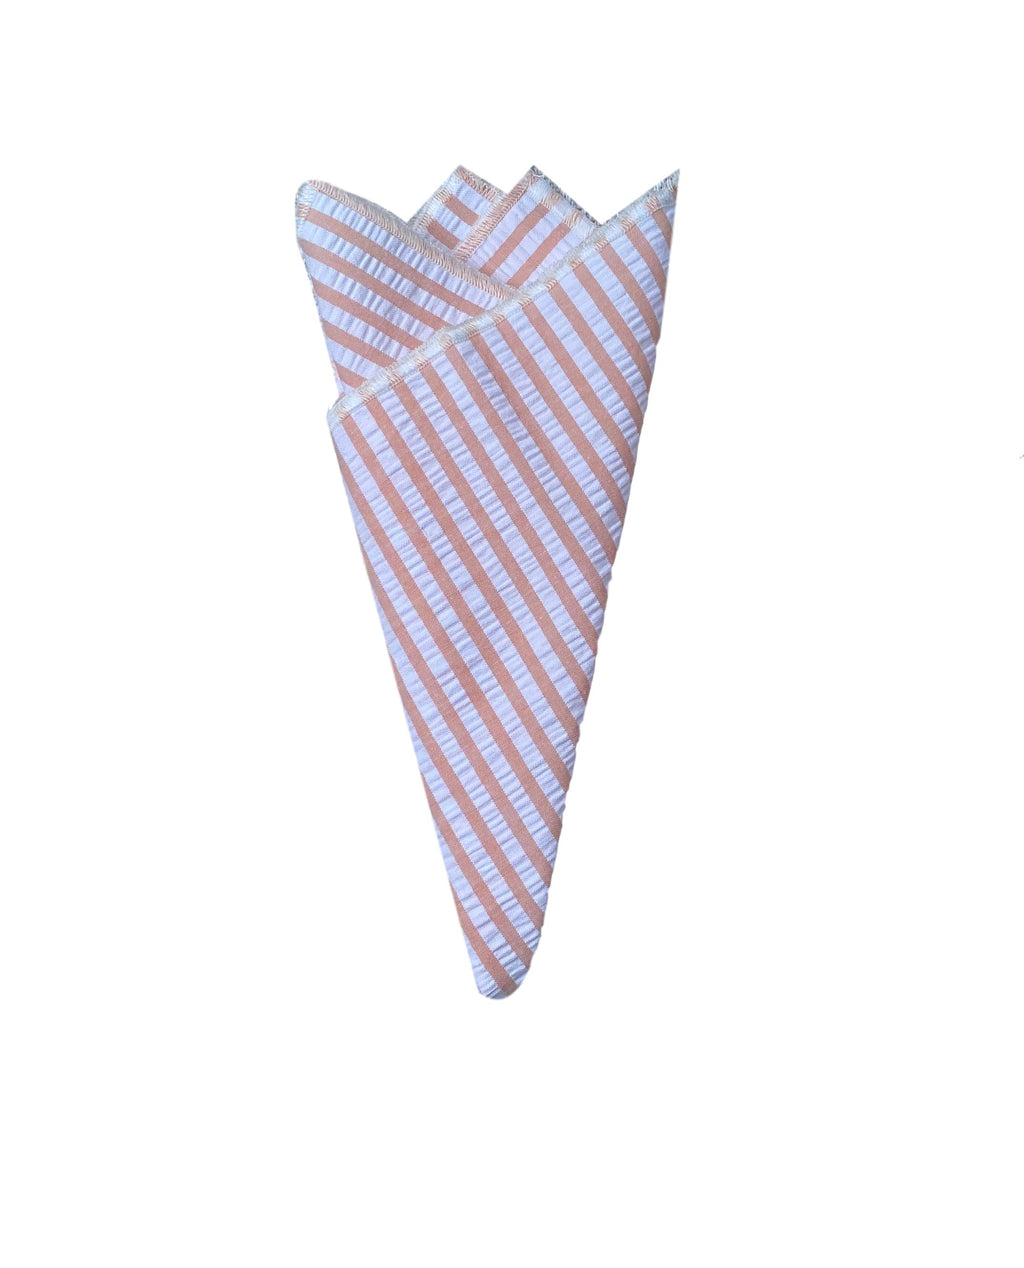 Pocket Square- Peach Seersucker